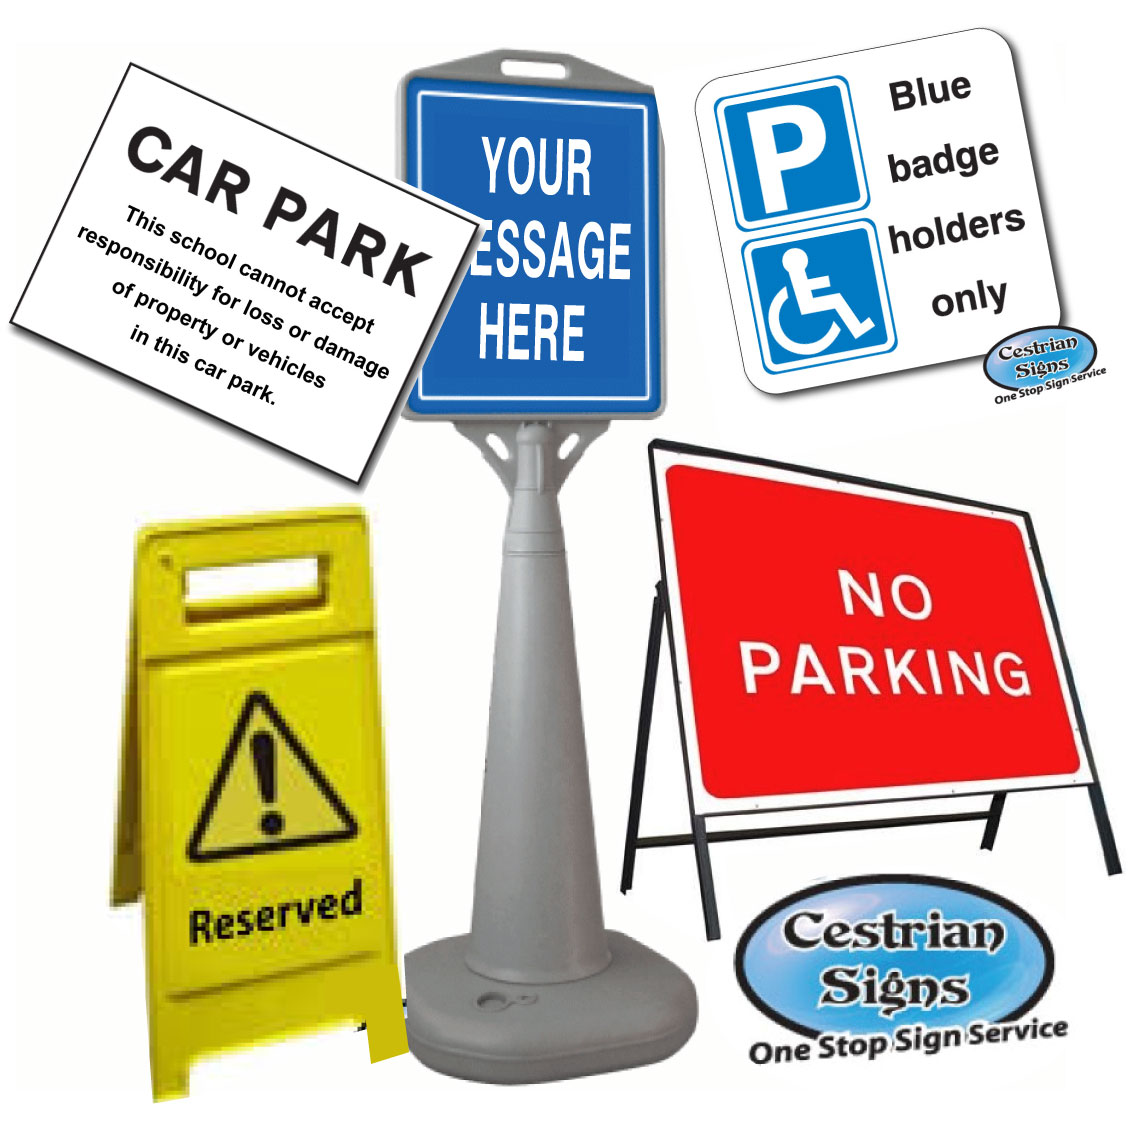 Car Park Pedestrian and Traffic Signs